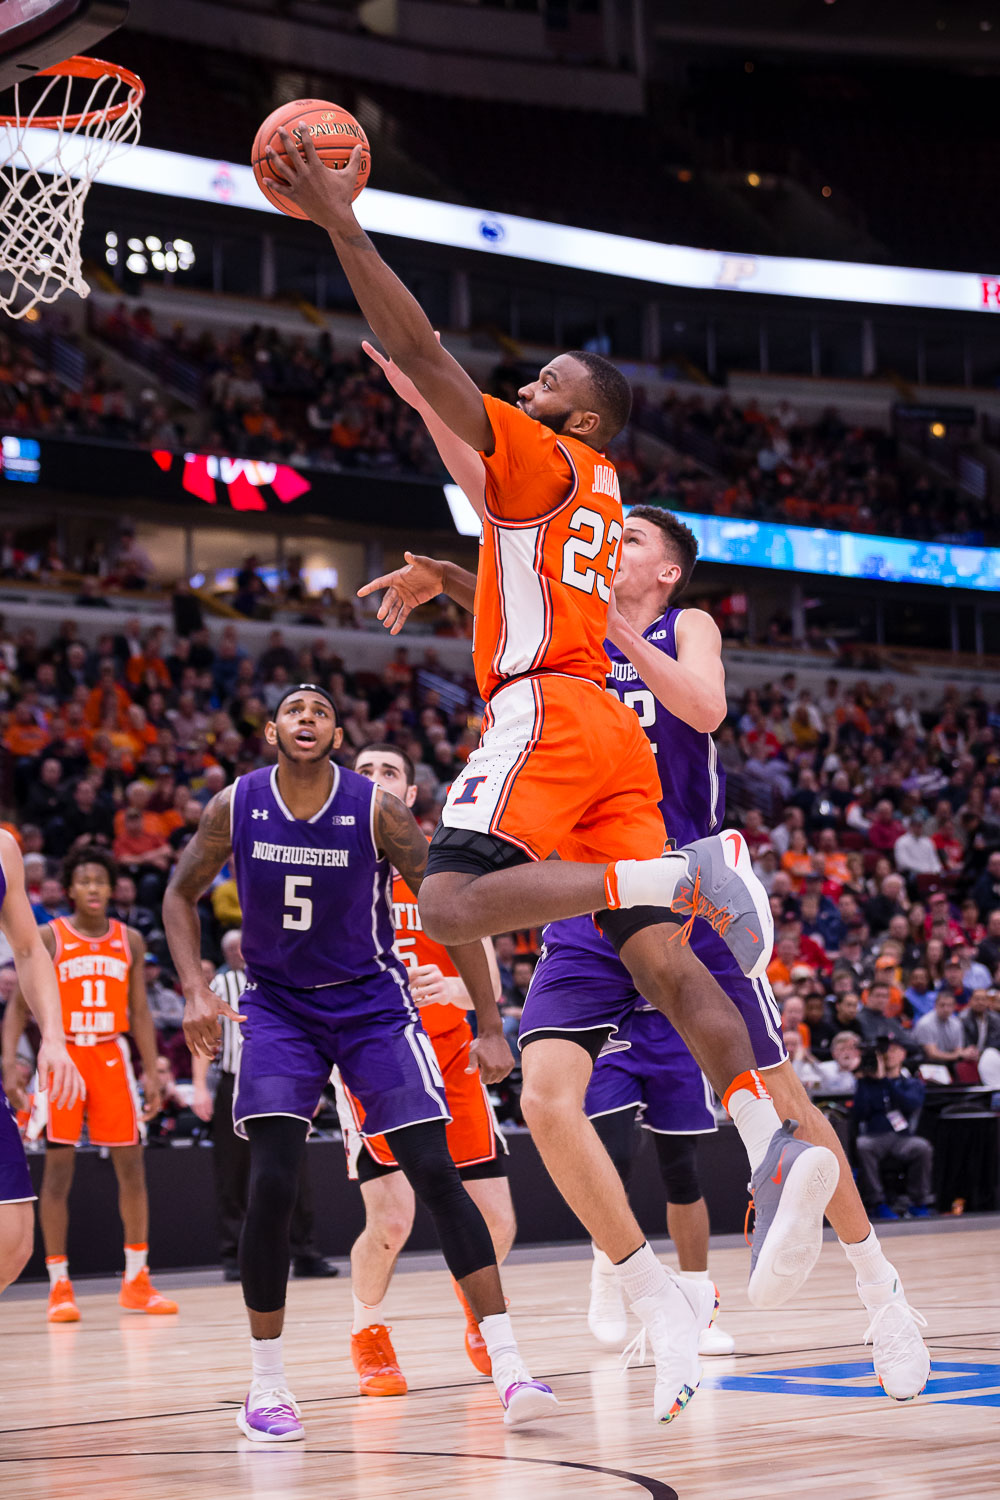 Illinois+guard+Aaron+Jordan+goes+up+for+a+layup+during+the+game+against+Northwestern+in+the+first+round+of+the+Big+Ten+Tournament+at+the+United+Center+on+Wednesday.